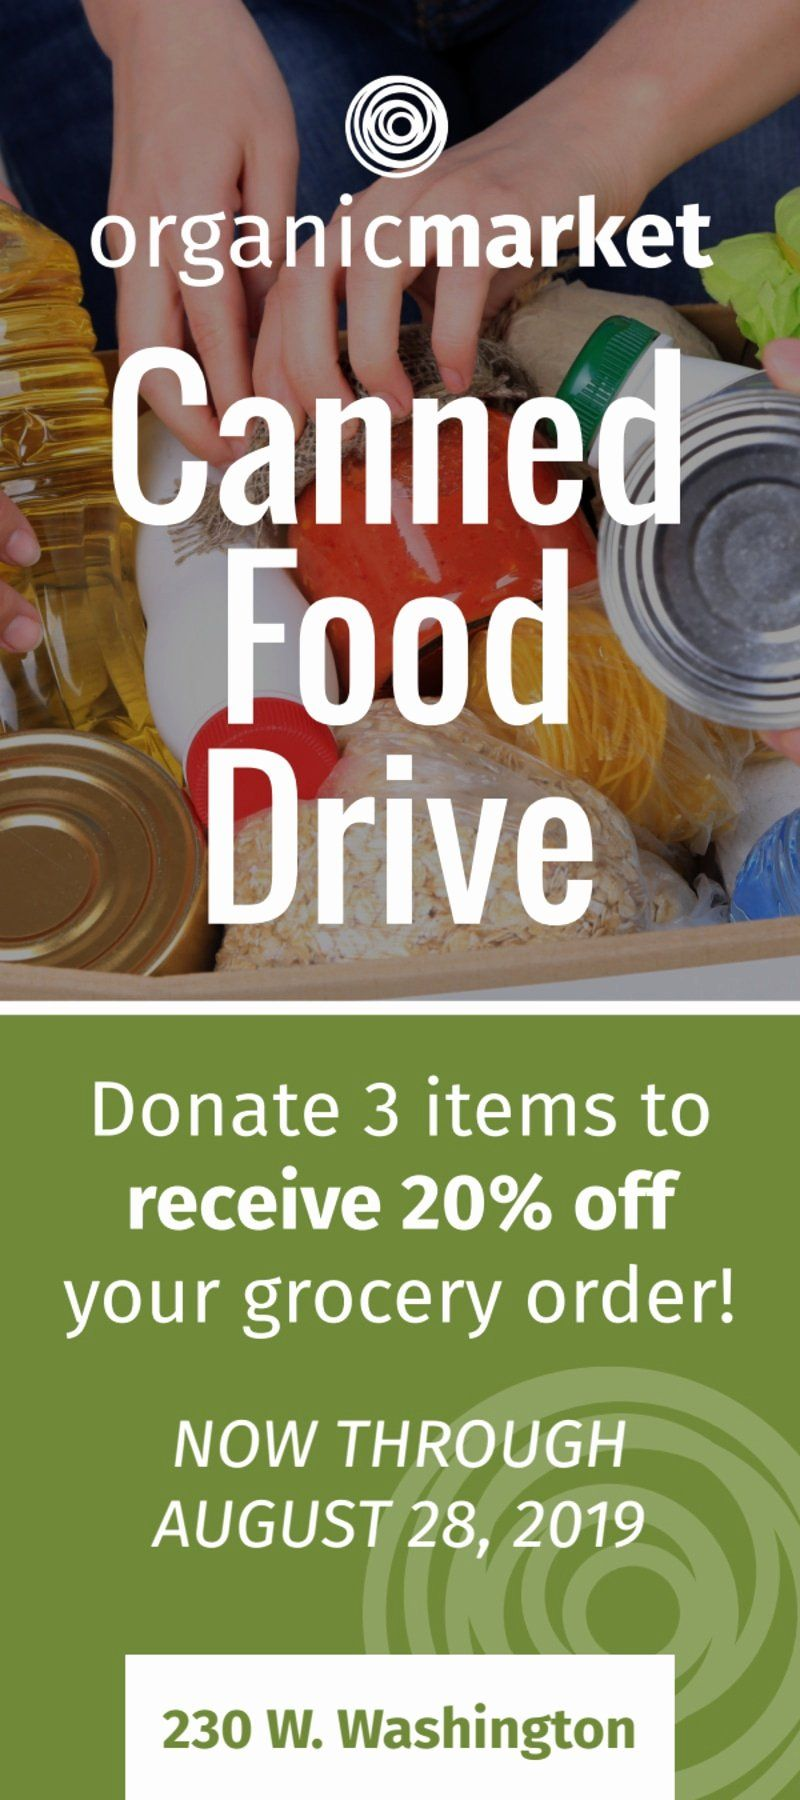 Food Drive Flyer Template Word Free